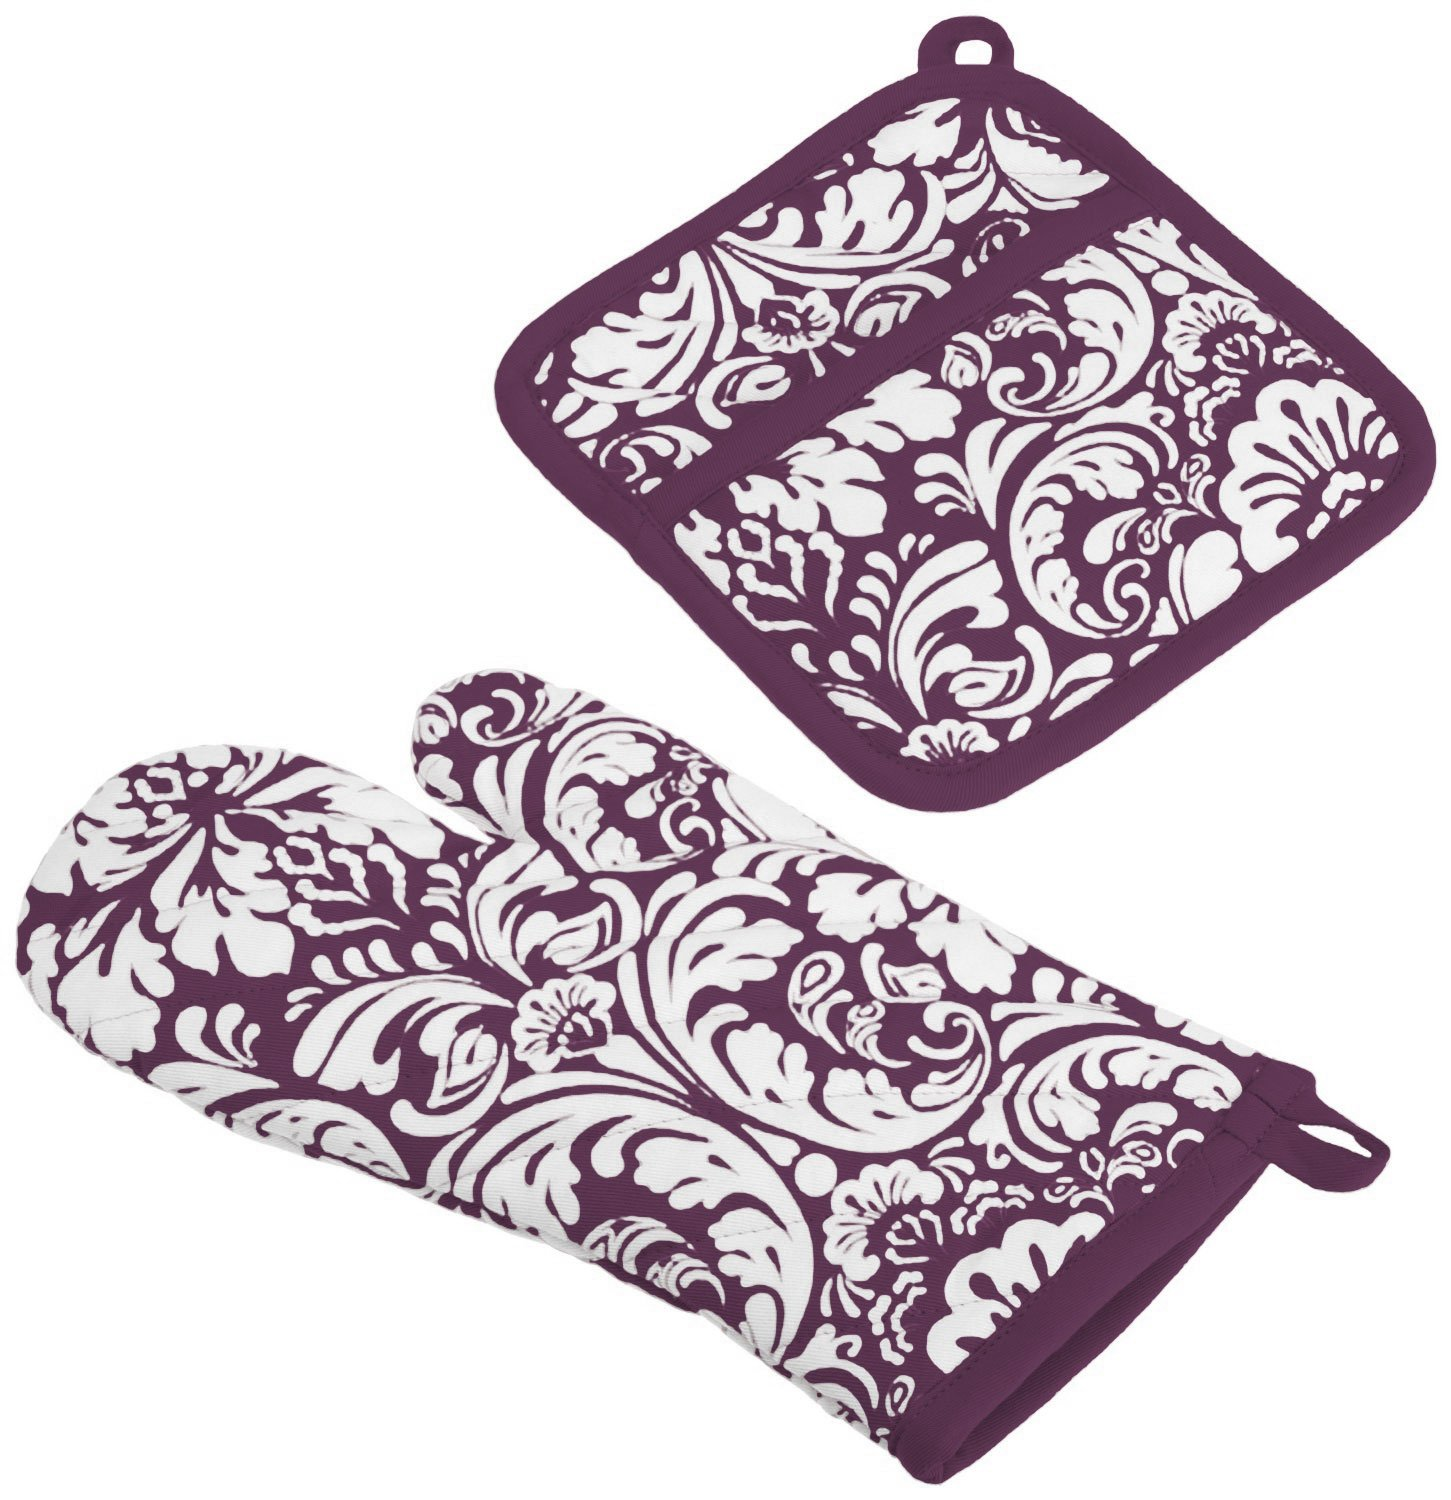 "DII Cotton Damask Oven Mitt 12 x 6.5"" and Pot Holder 8.5 x 8"" Kitchen Gift Set, Machine Washable and Heat Resistant for Cooking and Baking-Eggplant"